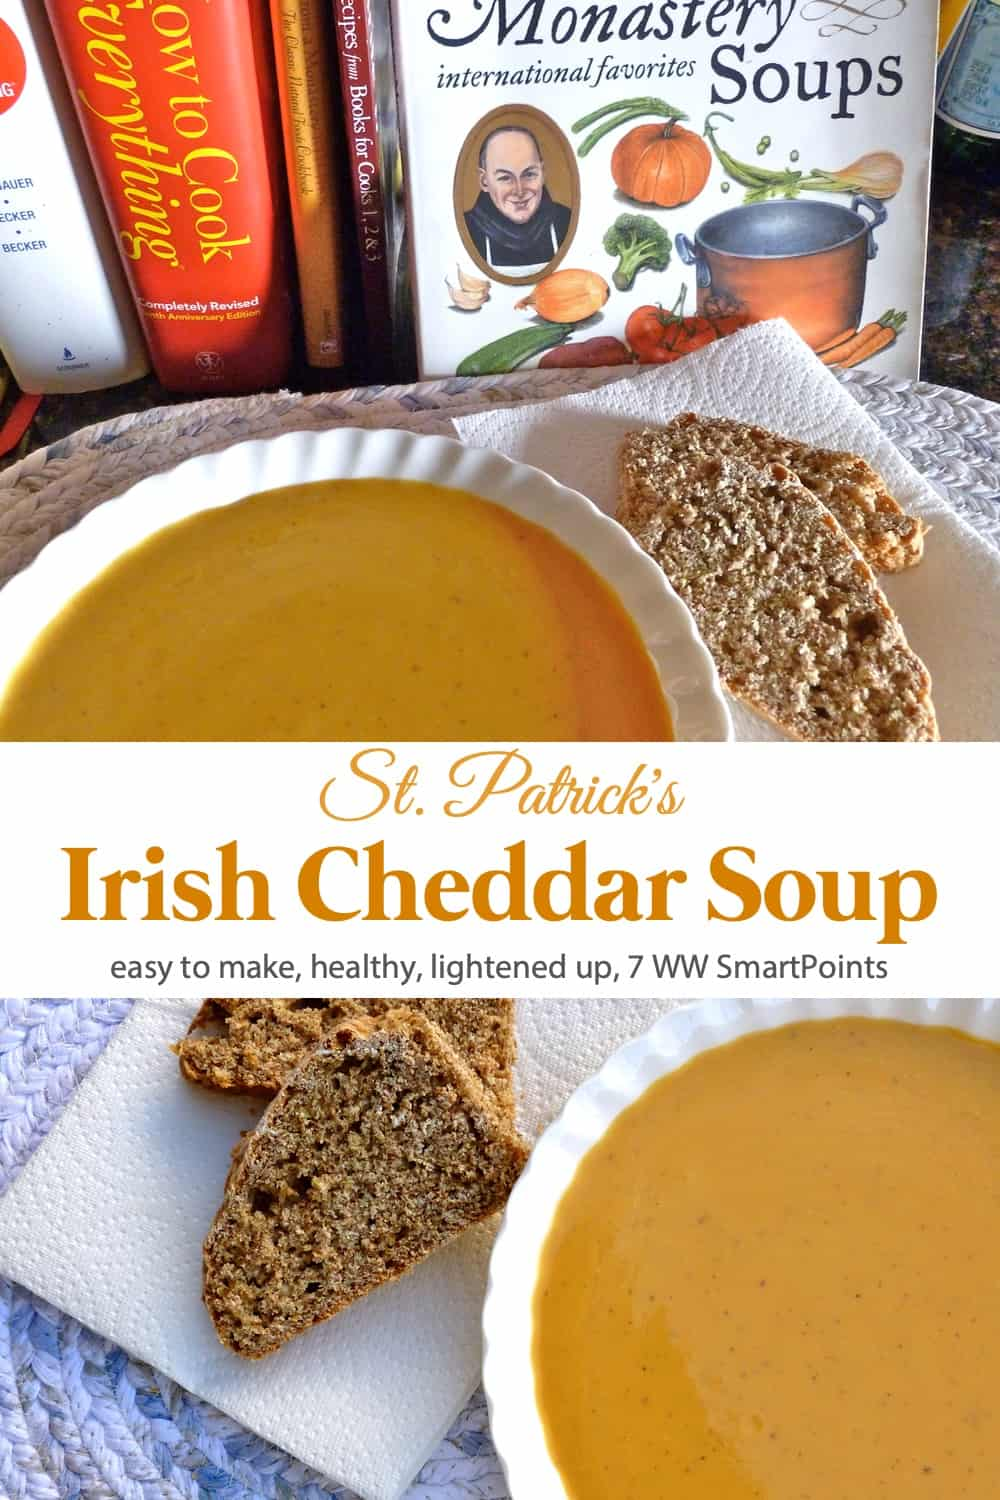 Creamy and flavorful, I served this St. Patrick Irish Cheddar Cheese Soup with smoked salmon and whole grain Irish soda bread for a light yet satisfying Sunday night supper. #irishcheddarcheesesoup #cheesesoup #soup #weightwatchers #ww #wwfamily